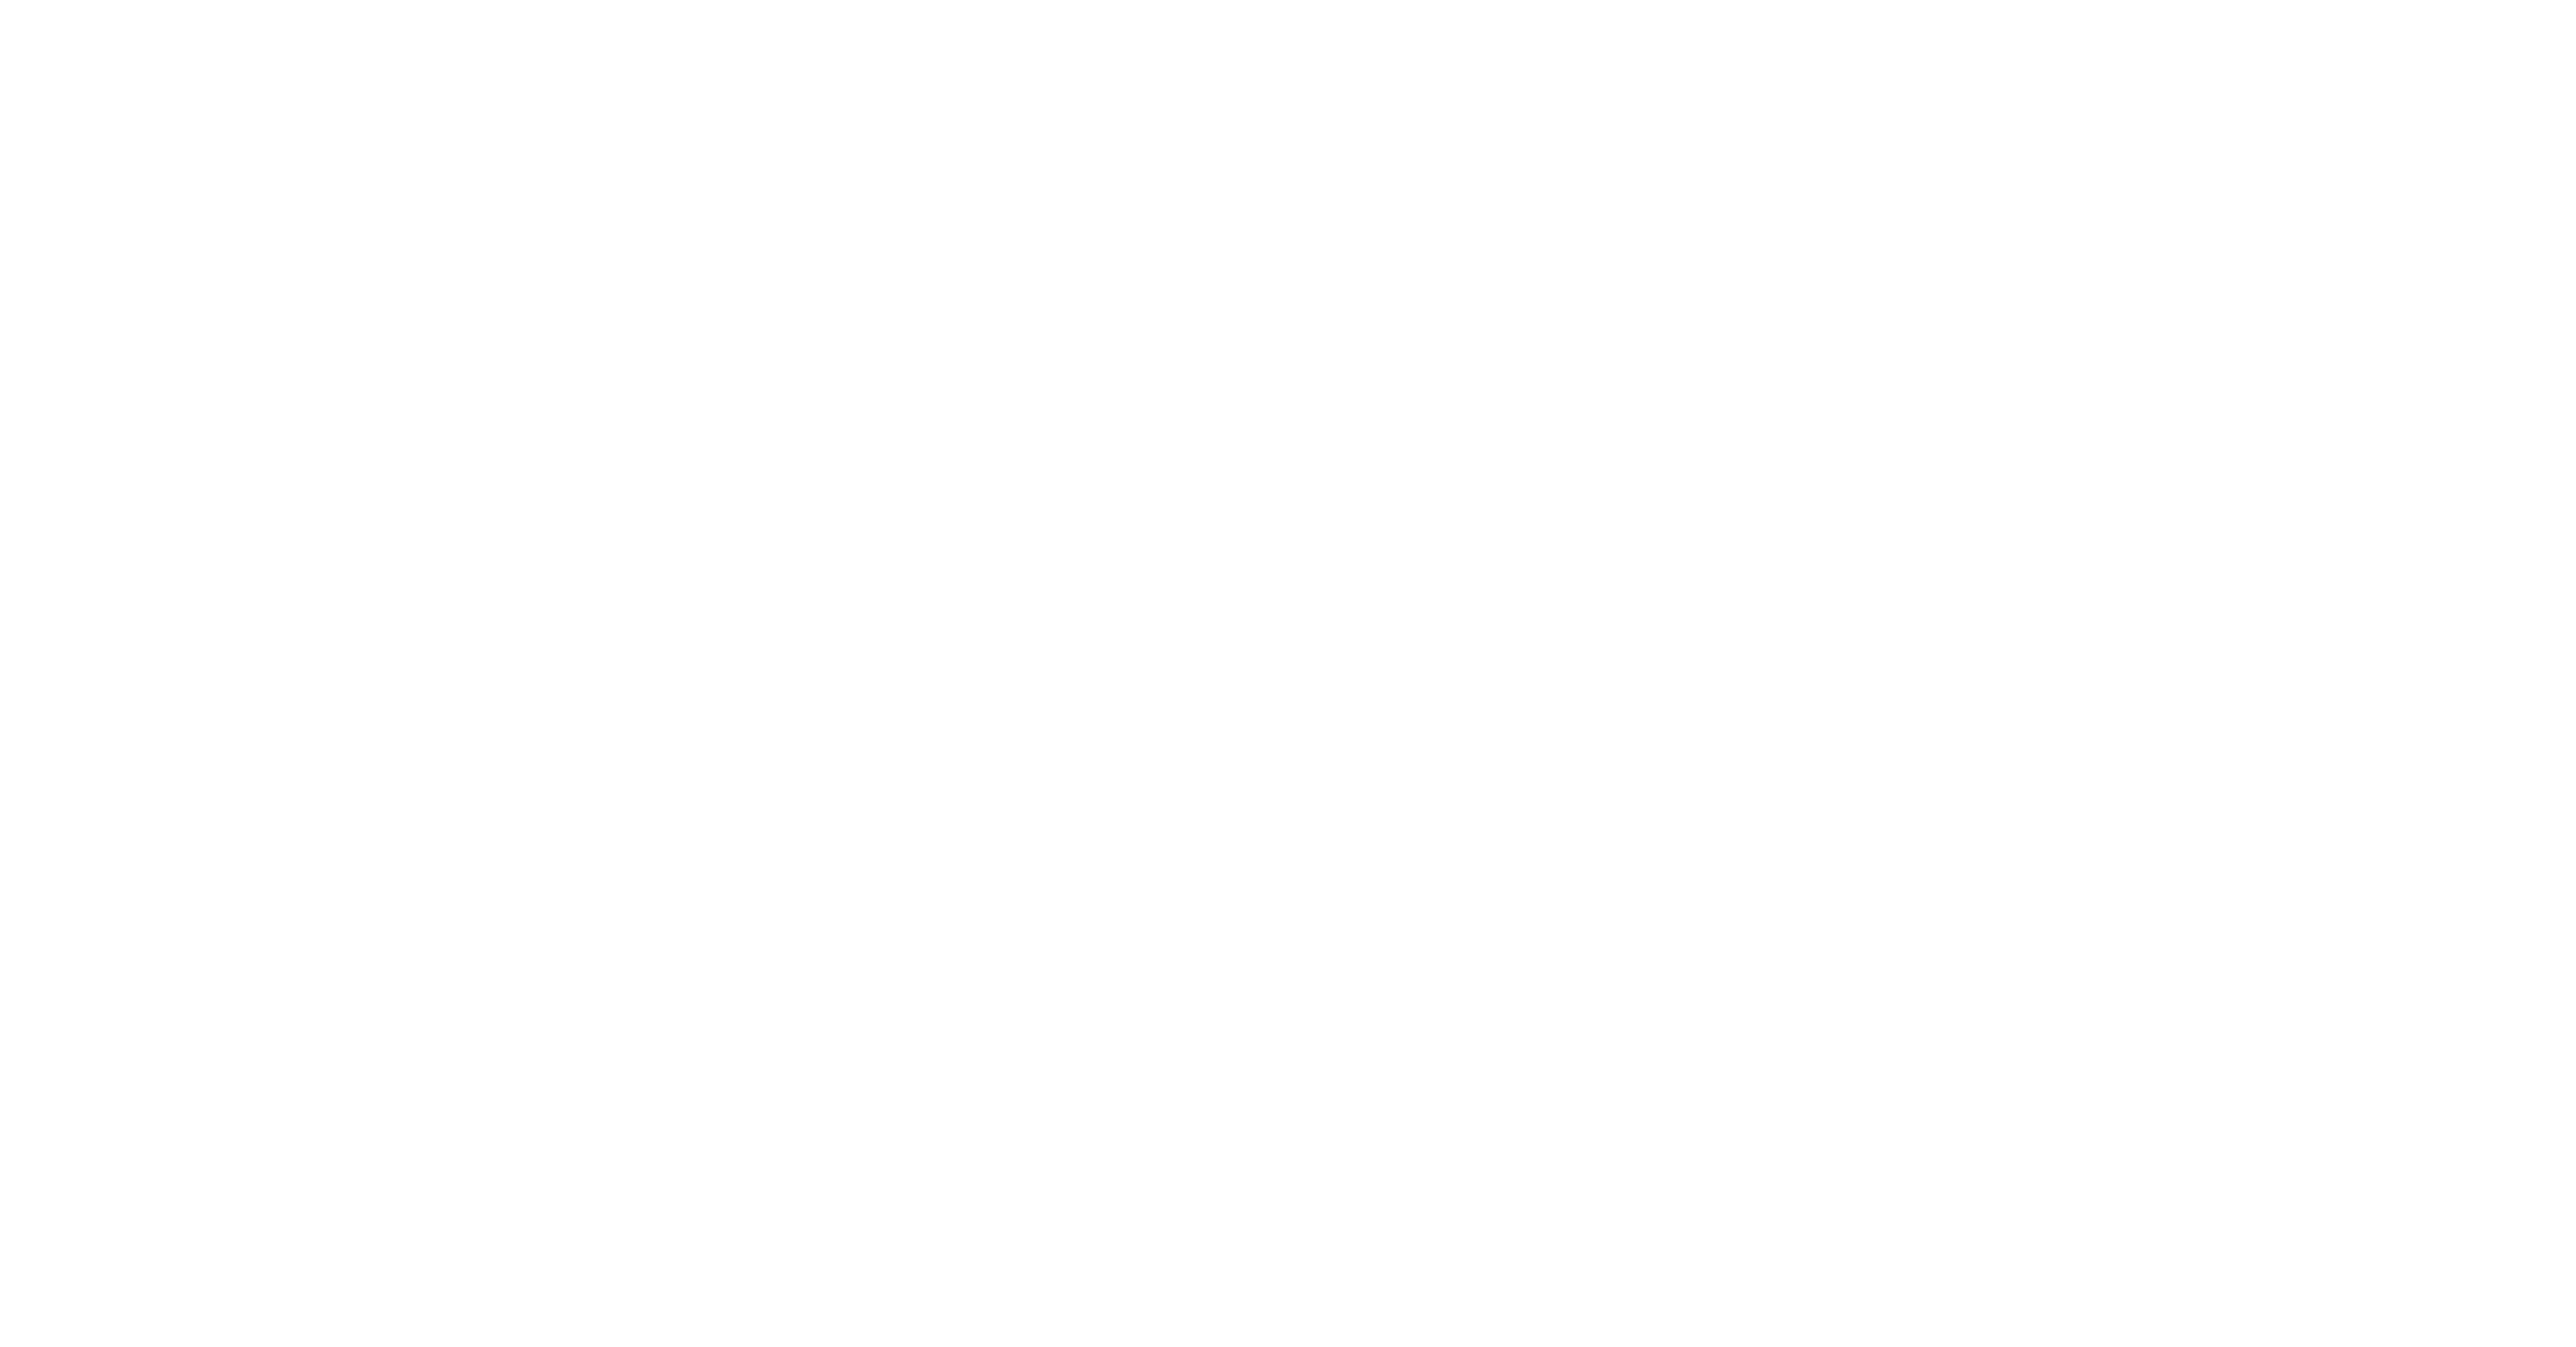 Southern cuisine header text